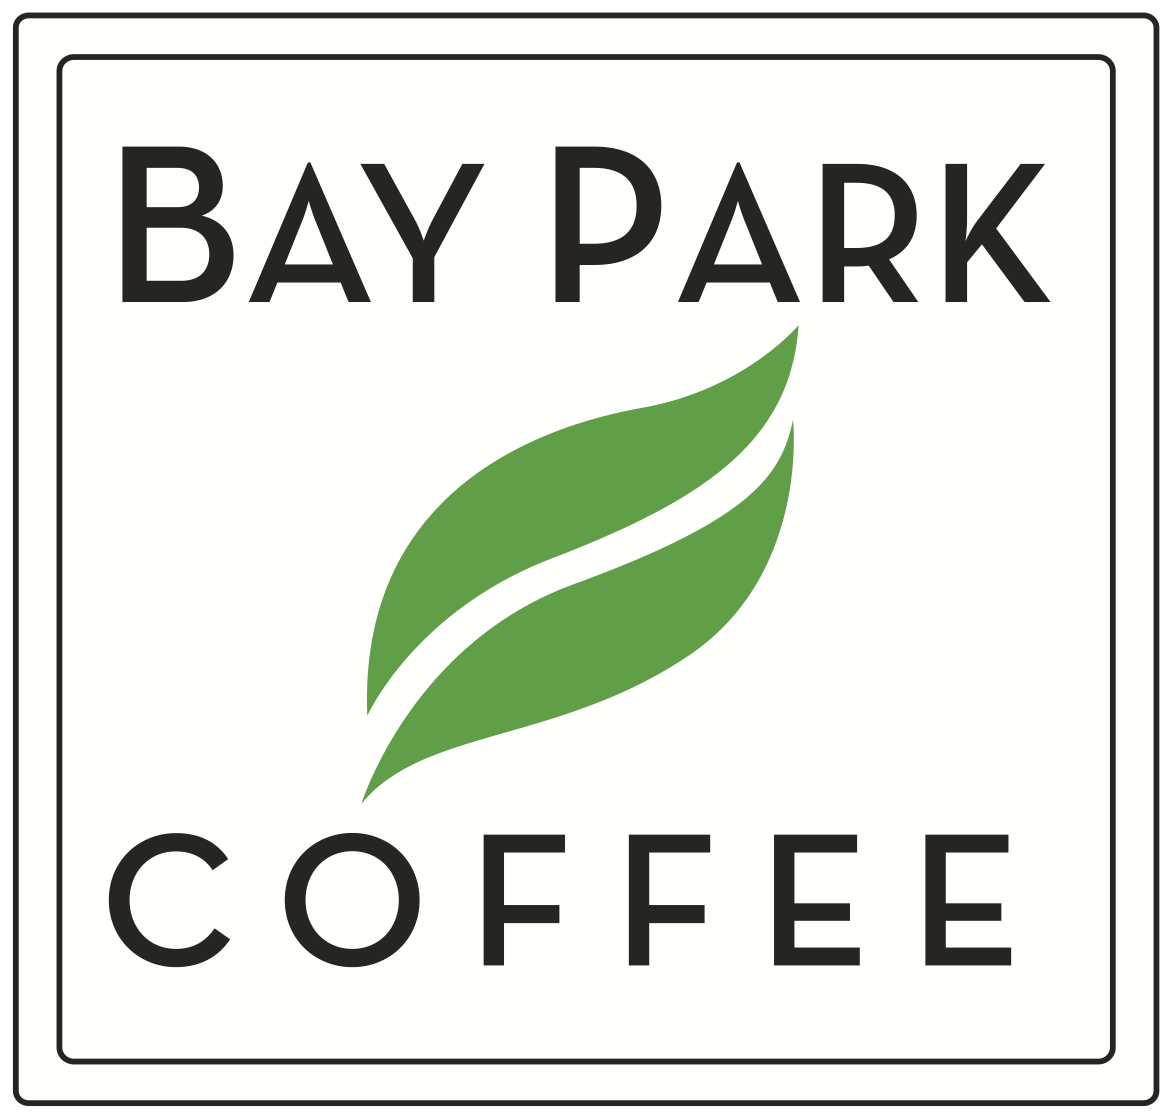 Bay Park Coffee